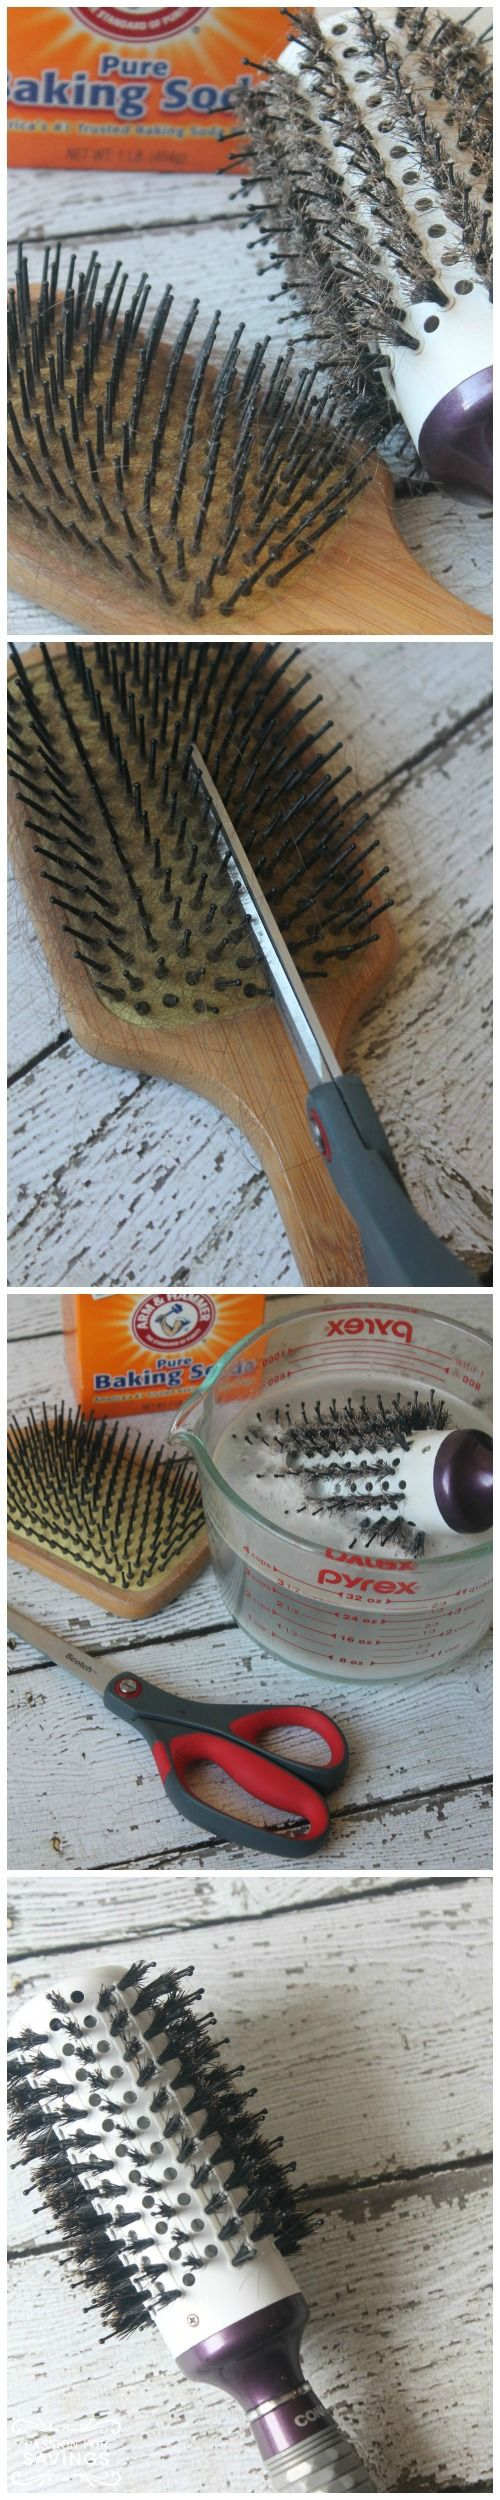 Take Scissors and cut about every 3rd row between the bristles to loosen hair Gently lift hair off of brush with a Pen or the end of a teasing comb Place 4 cups of Water in the Microwave for 3 or 4 Minutes until it is Hot Add 3 Tbsp. of Baking Soda to Hot Water Place Brush in the Hot Water Mixture to clean build up off your brush Scrub Gently with another brush or your hand to remove build up Remove from water and allow to dry